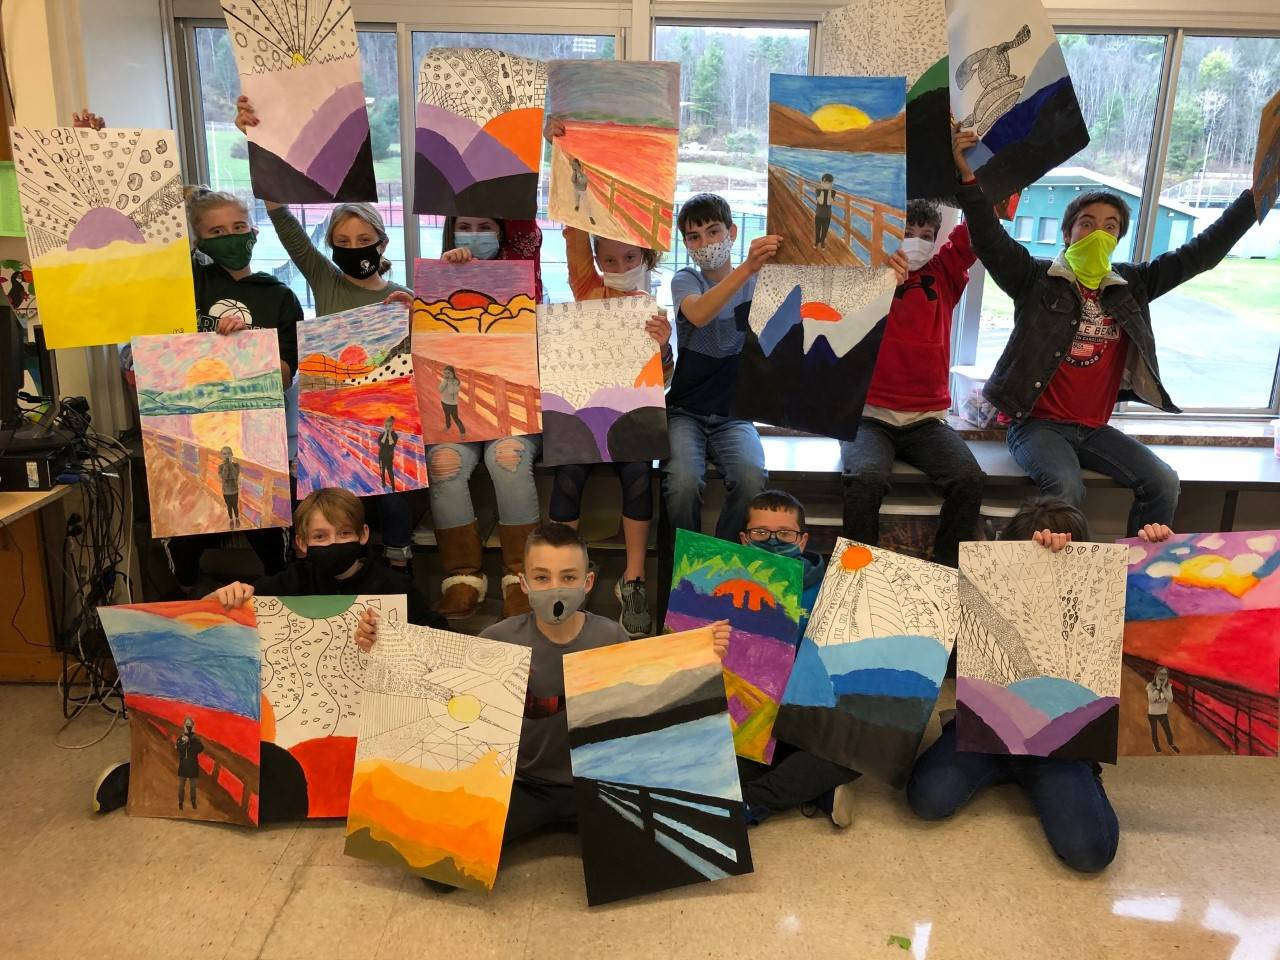 Photo of Mrs. Olbrys' middle school art class with drawings